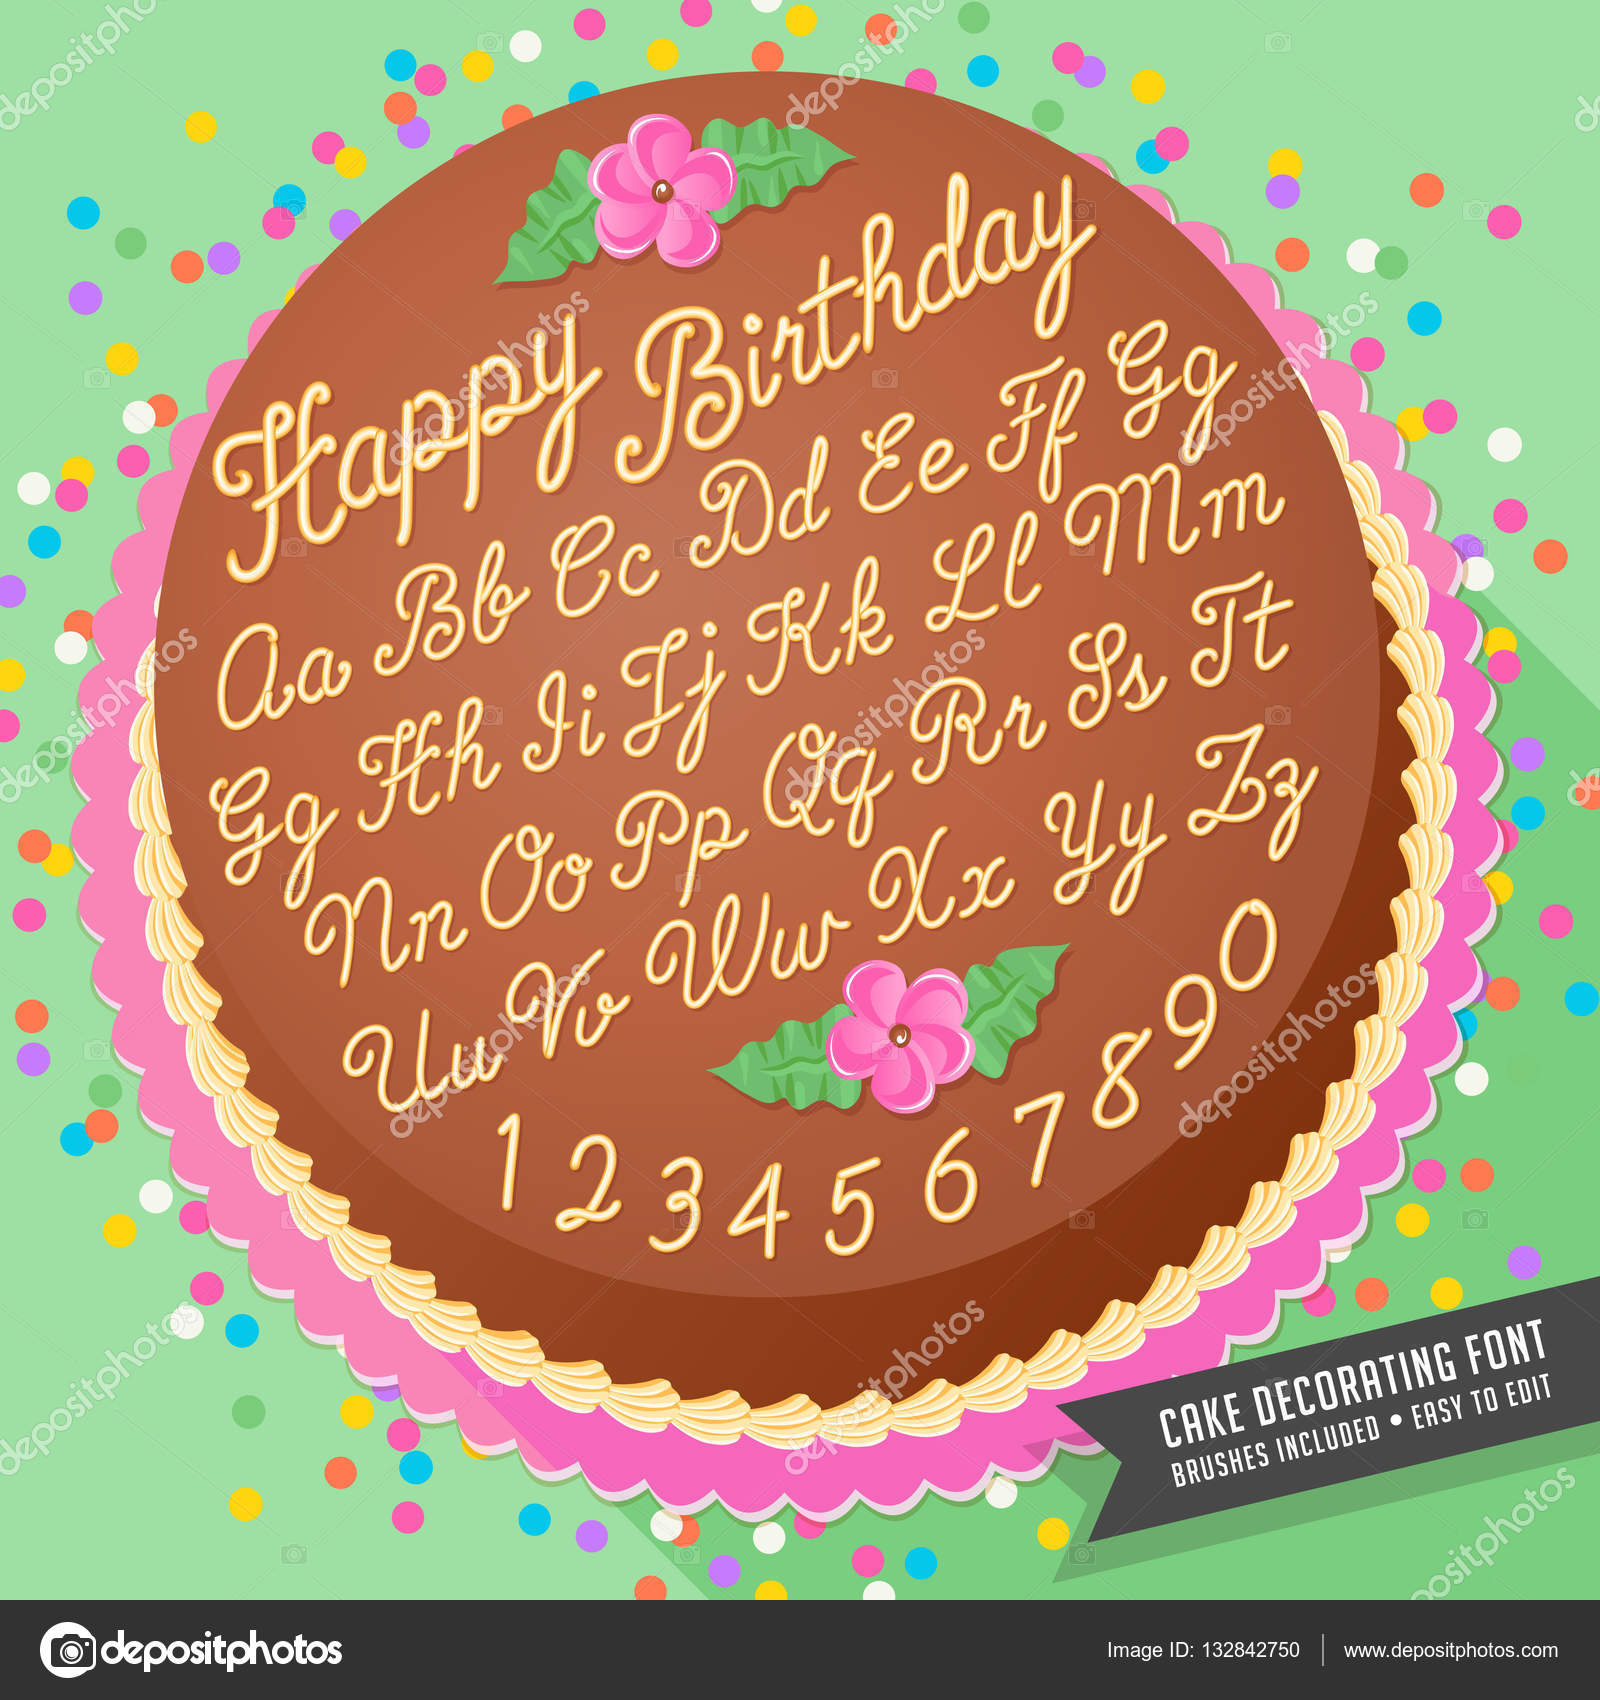 Gradient Free Vector Cake Decorating Icing Font With Birthday Cake